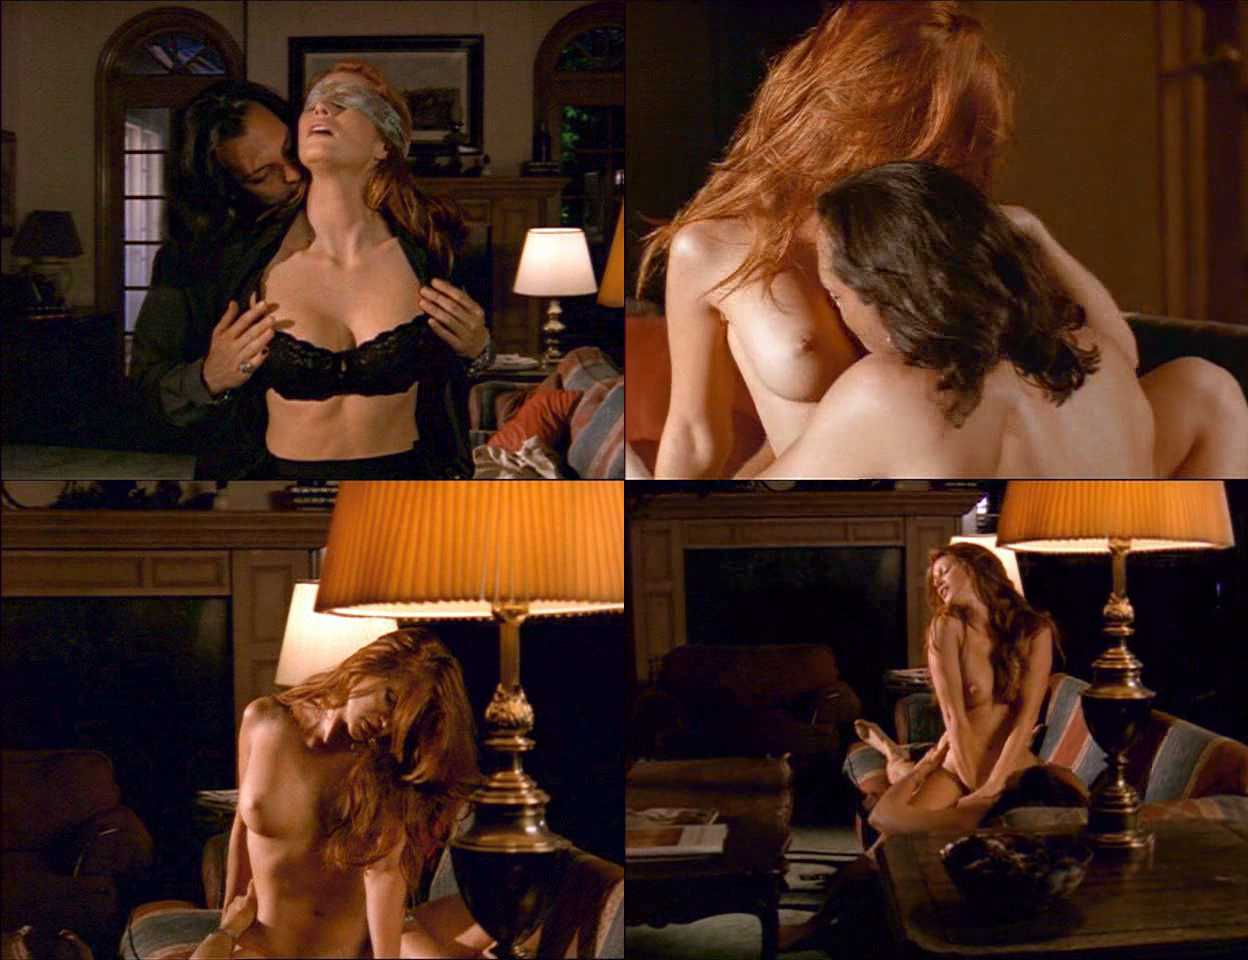 angie everhart nude pics & videos, sex tape < ancensored